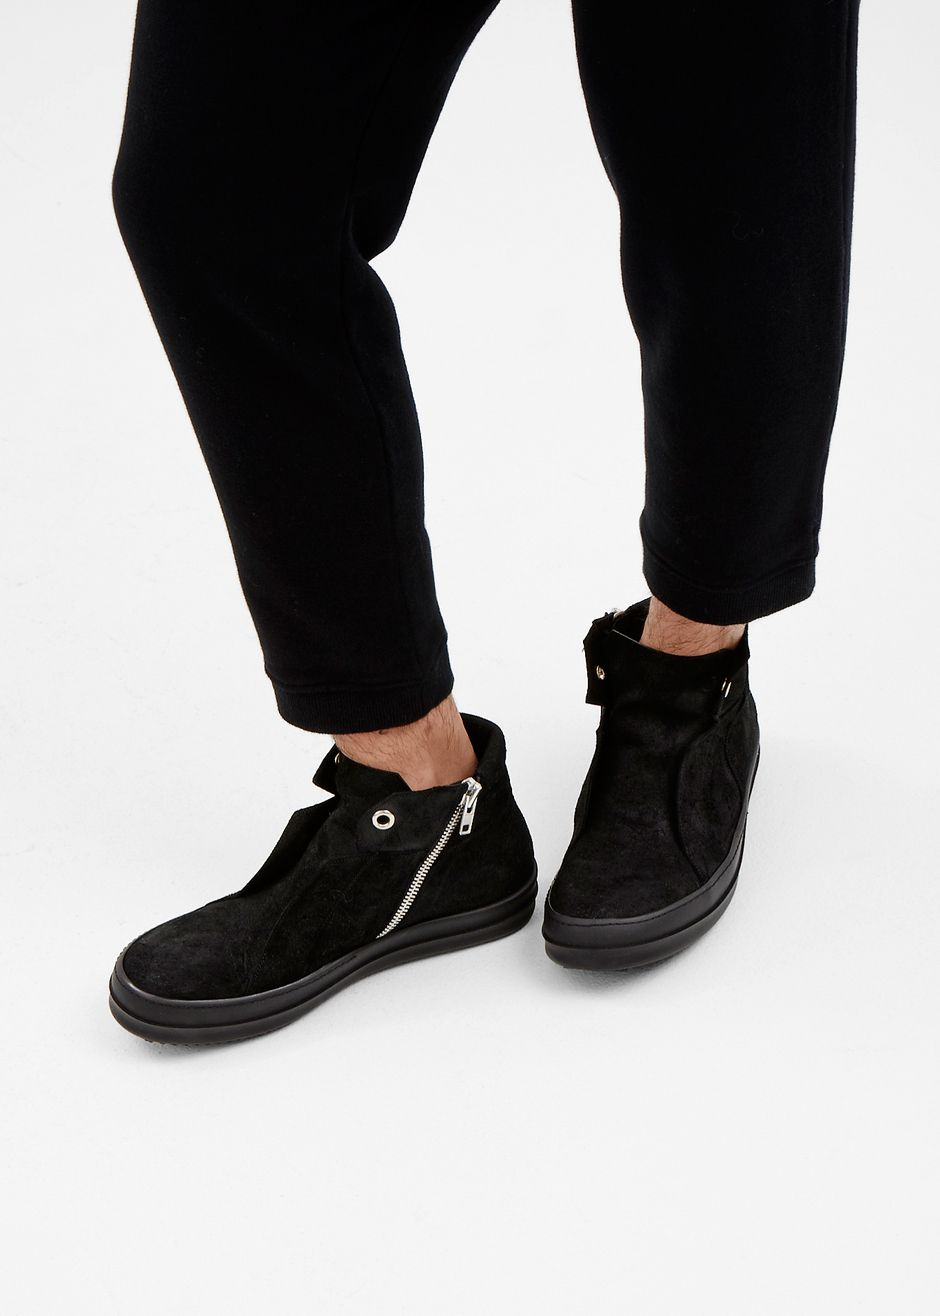 Rick Owens Blistered Leather Island Dunk Sneaker in Black  totokaelo   rickowens f9534a7cb6912